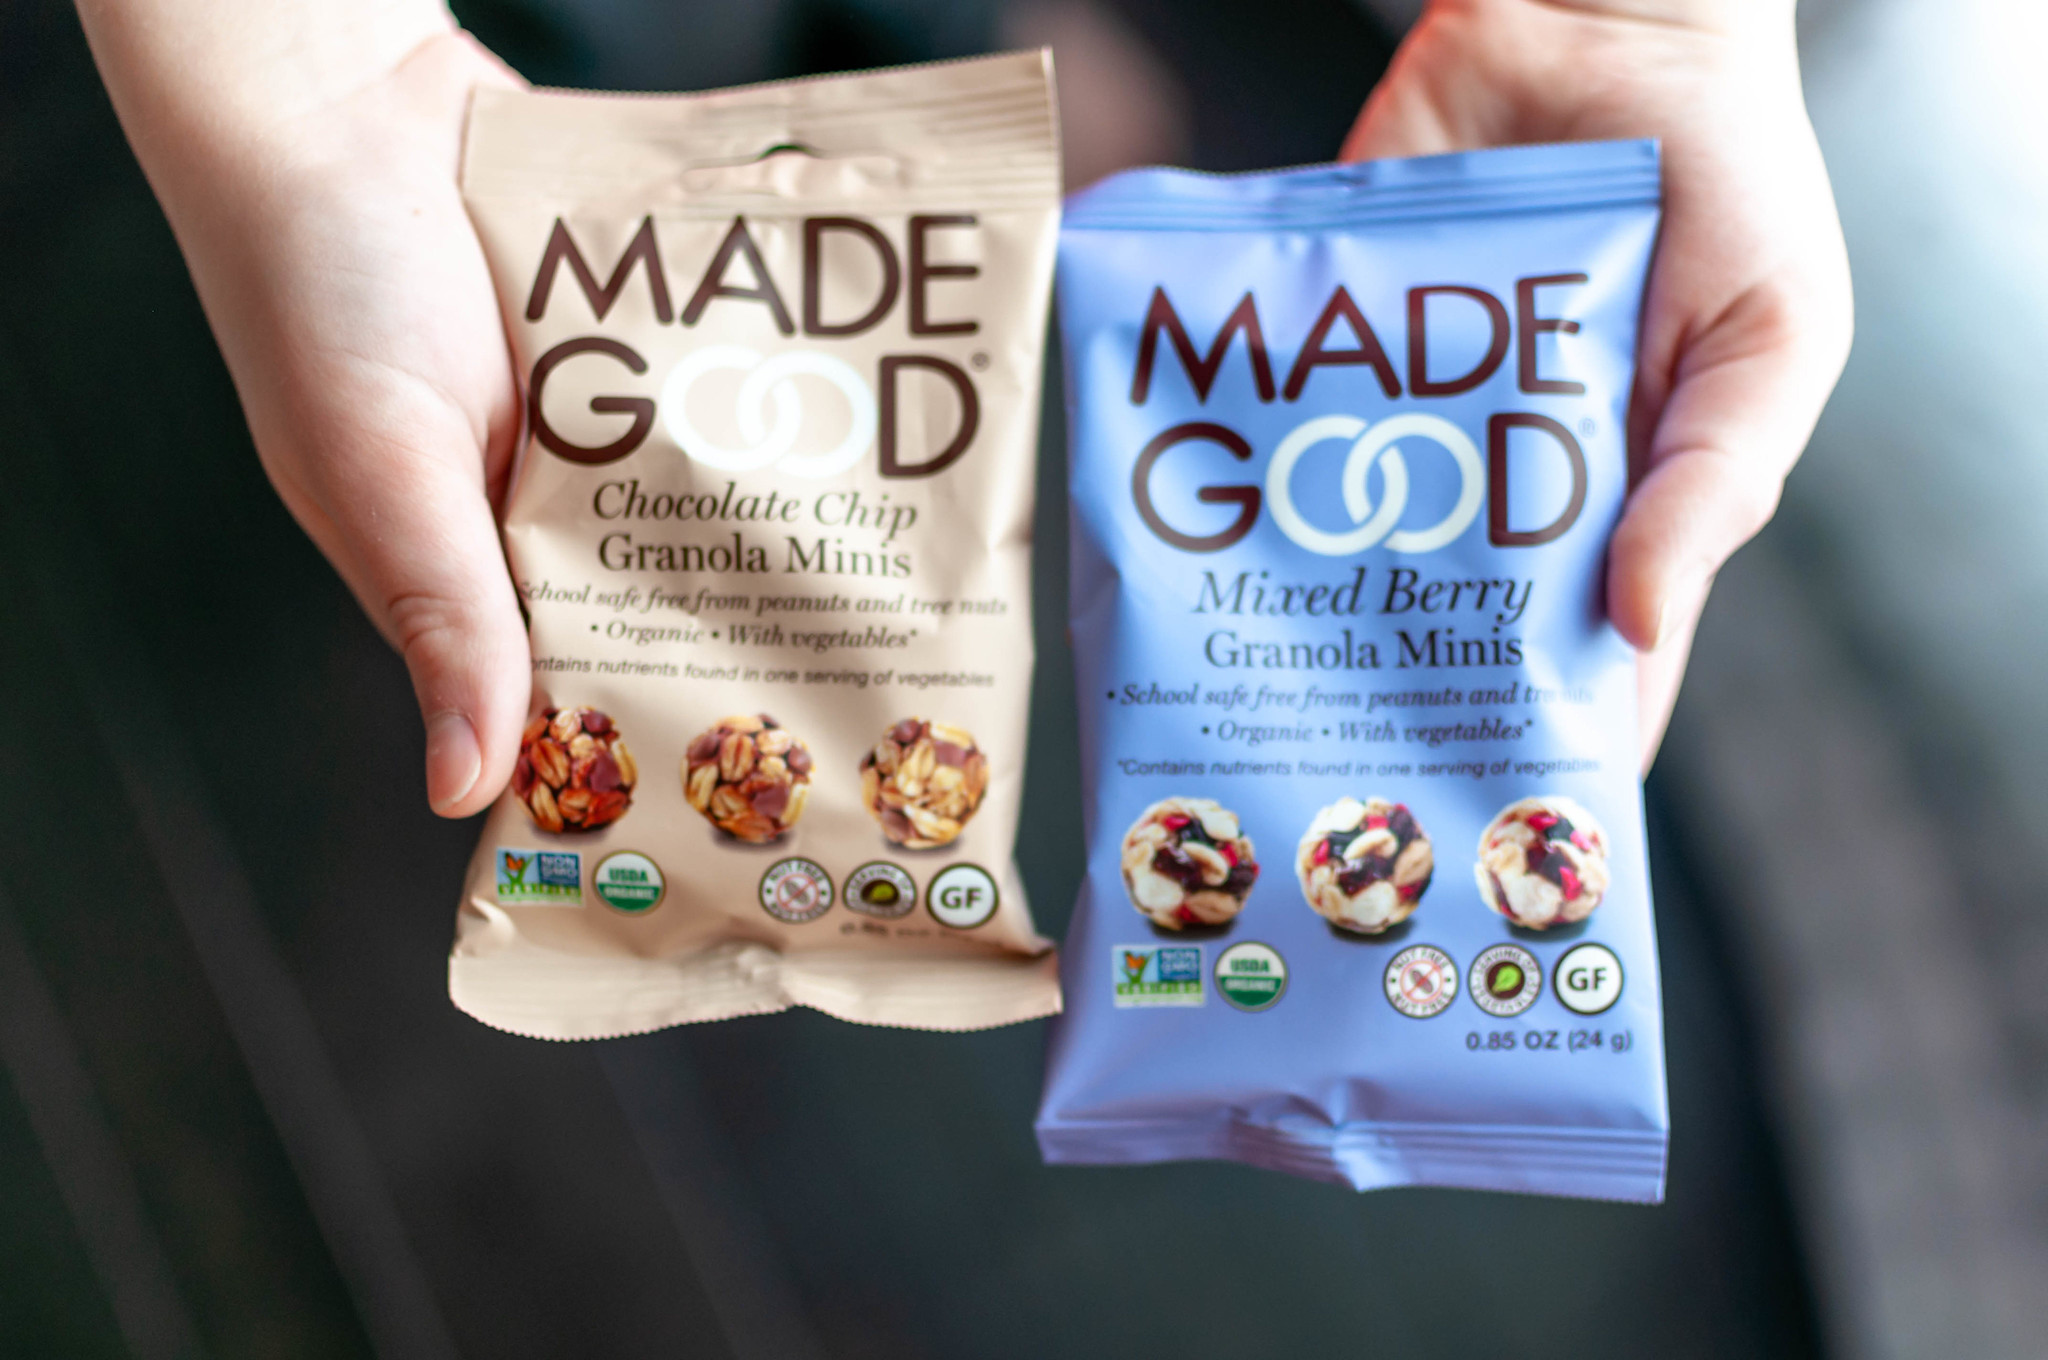 MadeGood granola minis are a new favorite in our house and I'm talking all about them in this month's Let's Catch Up post.